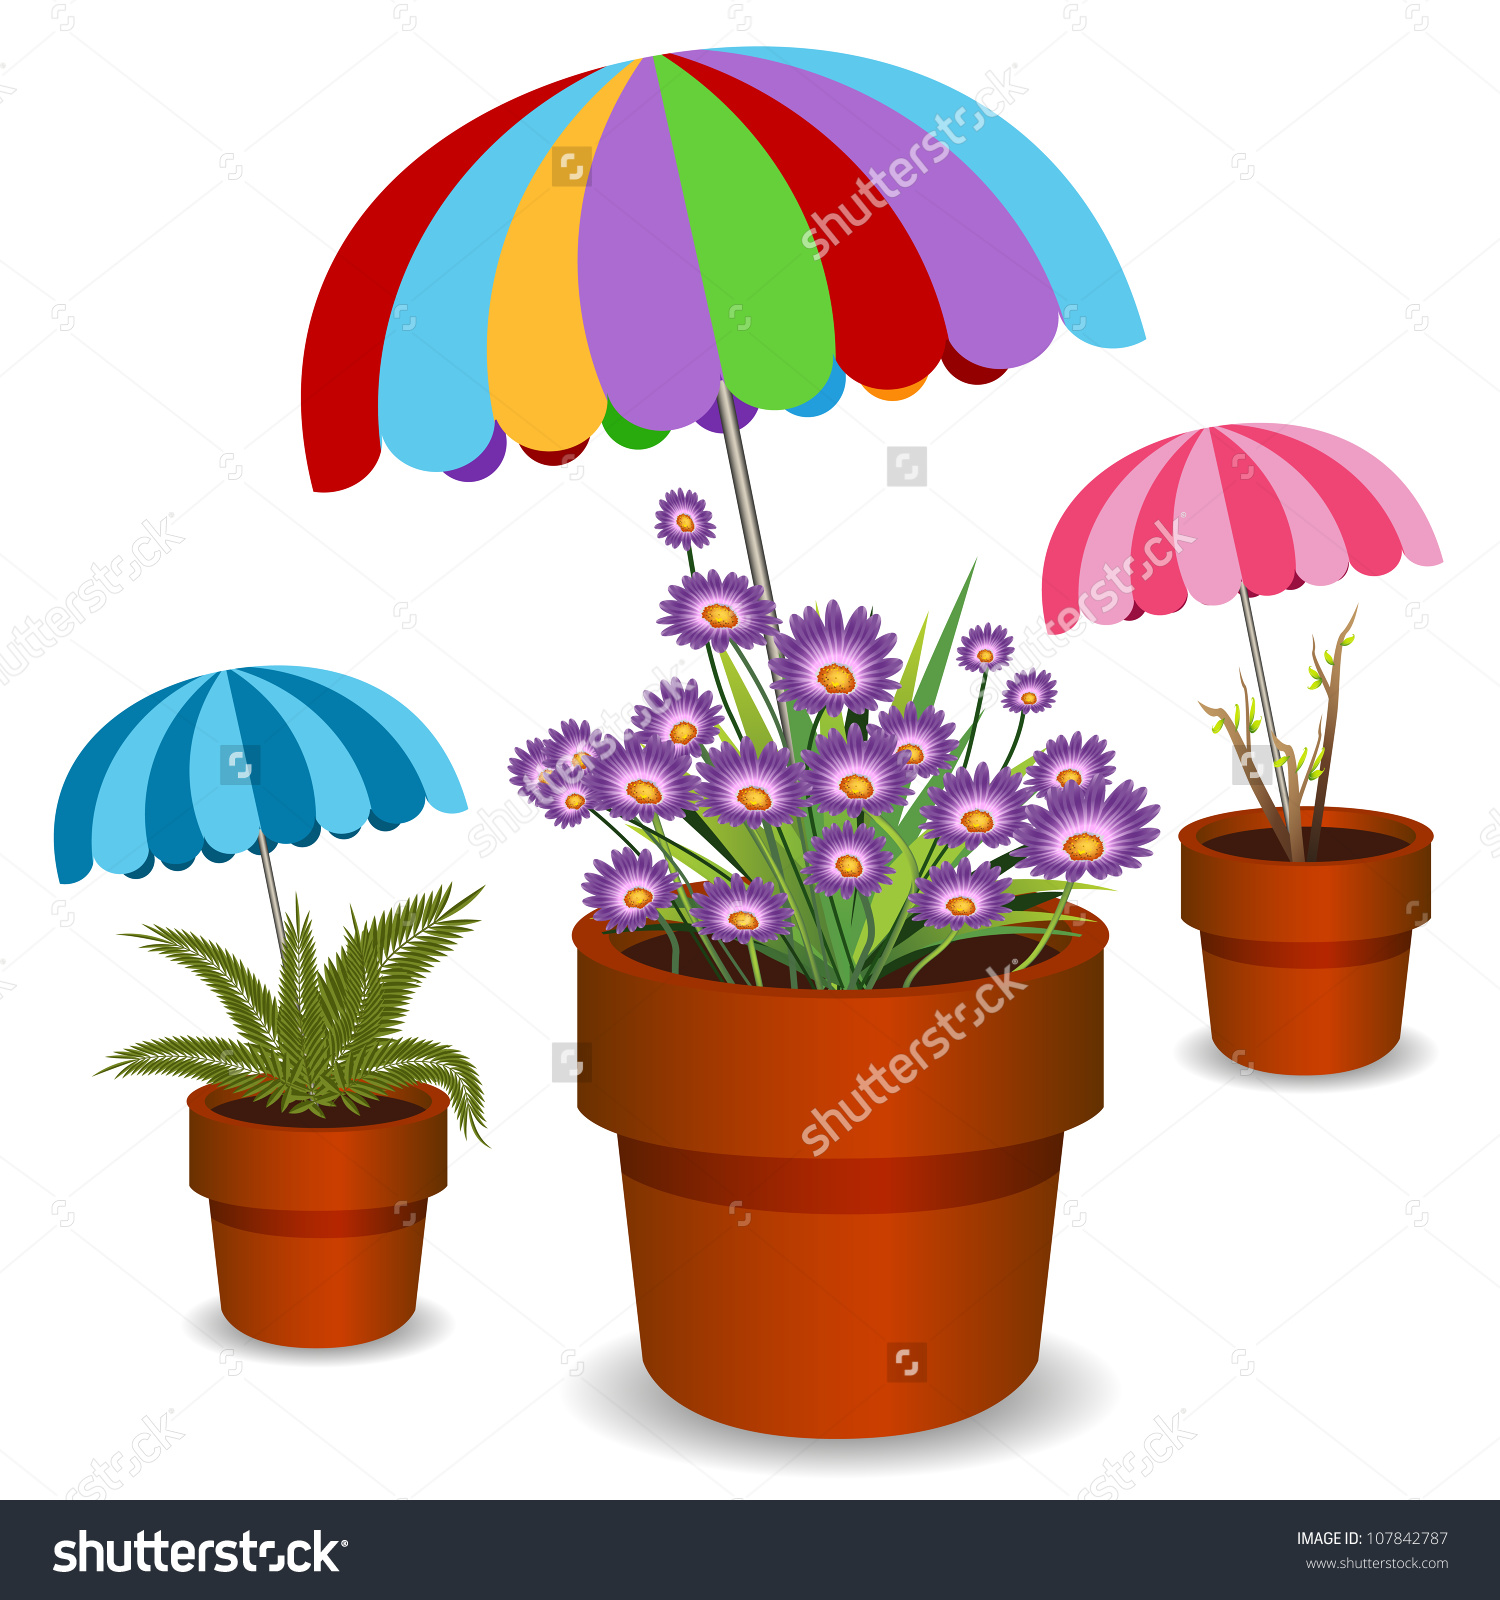 Image Potted Plants Shaded By Umbrellas Stock Vector 107842787.